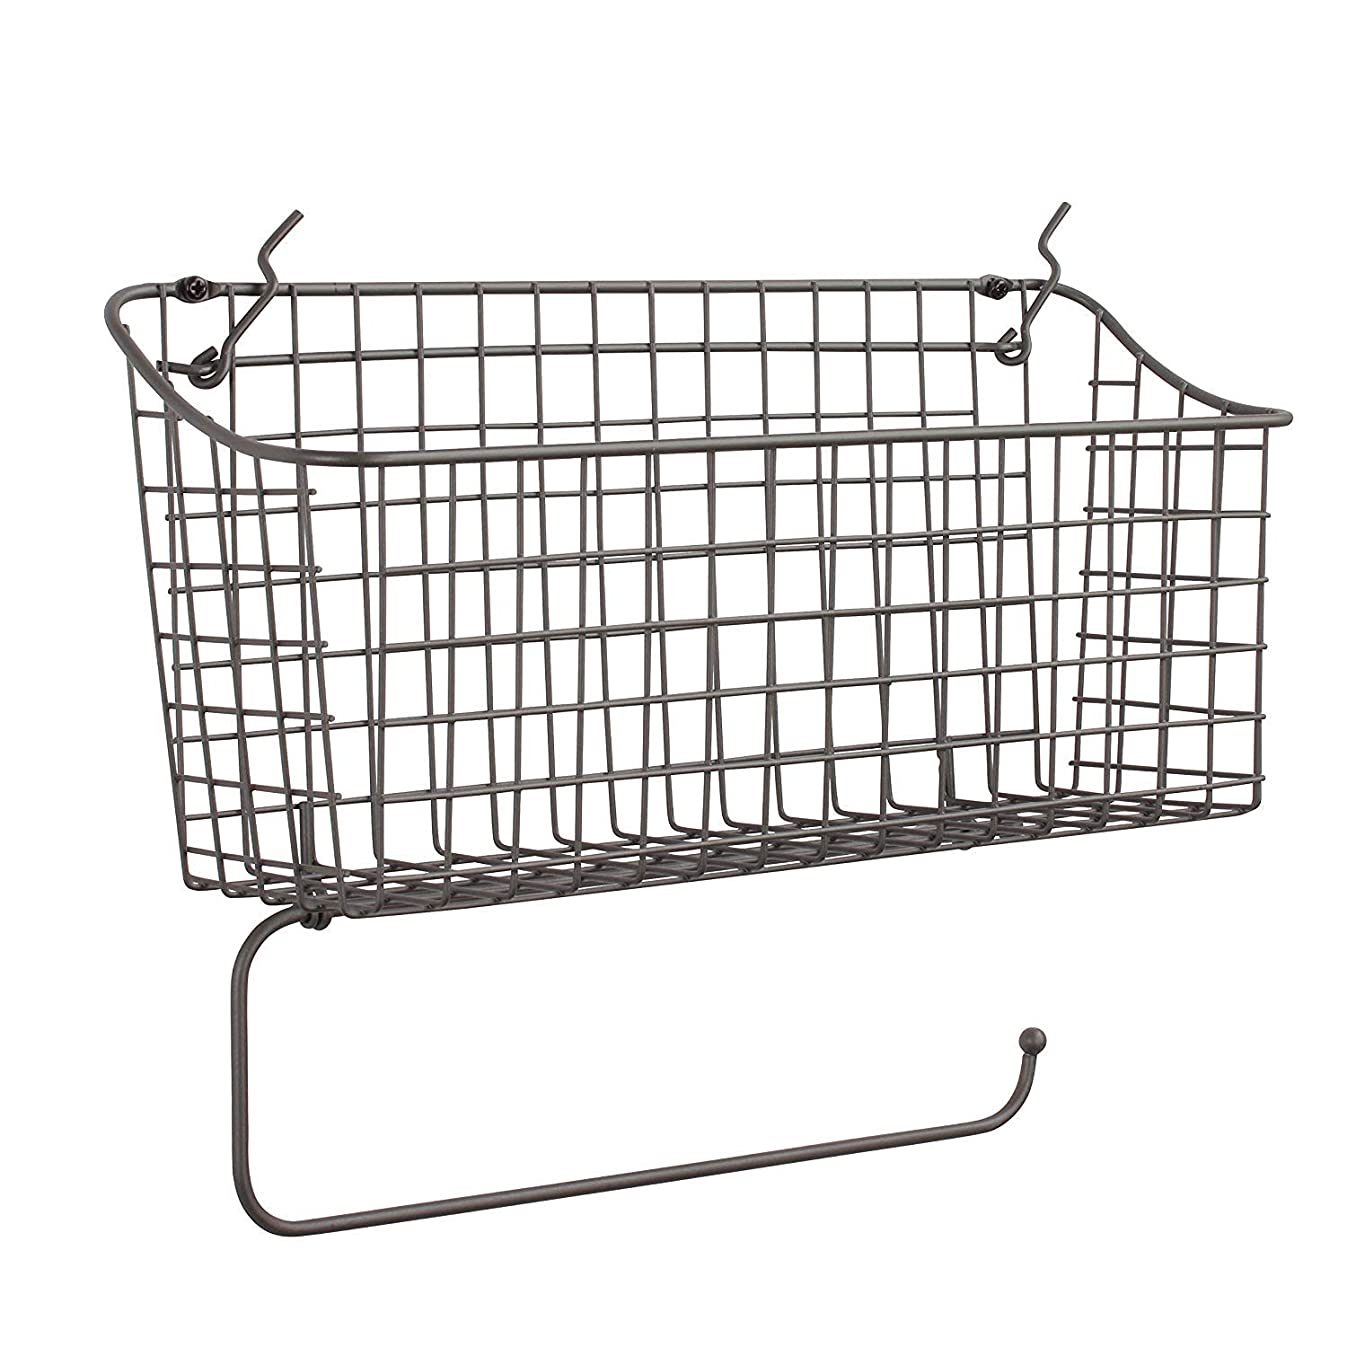 Spectrum Diversified Pegboard/Wall Mount Basket and Paper Towel Holder, Industrial Gray